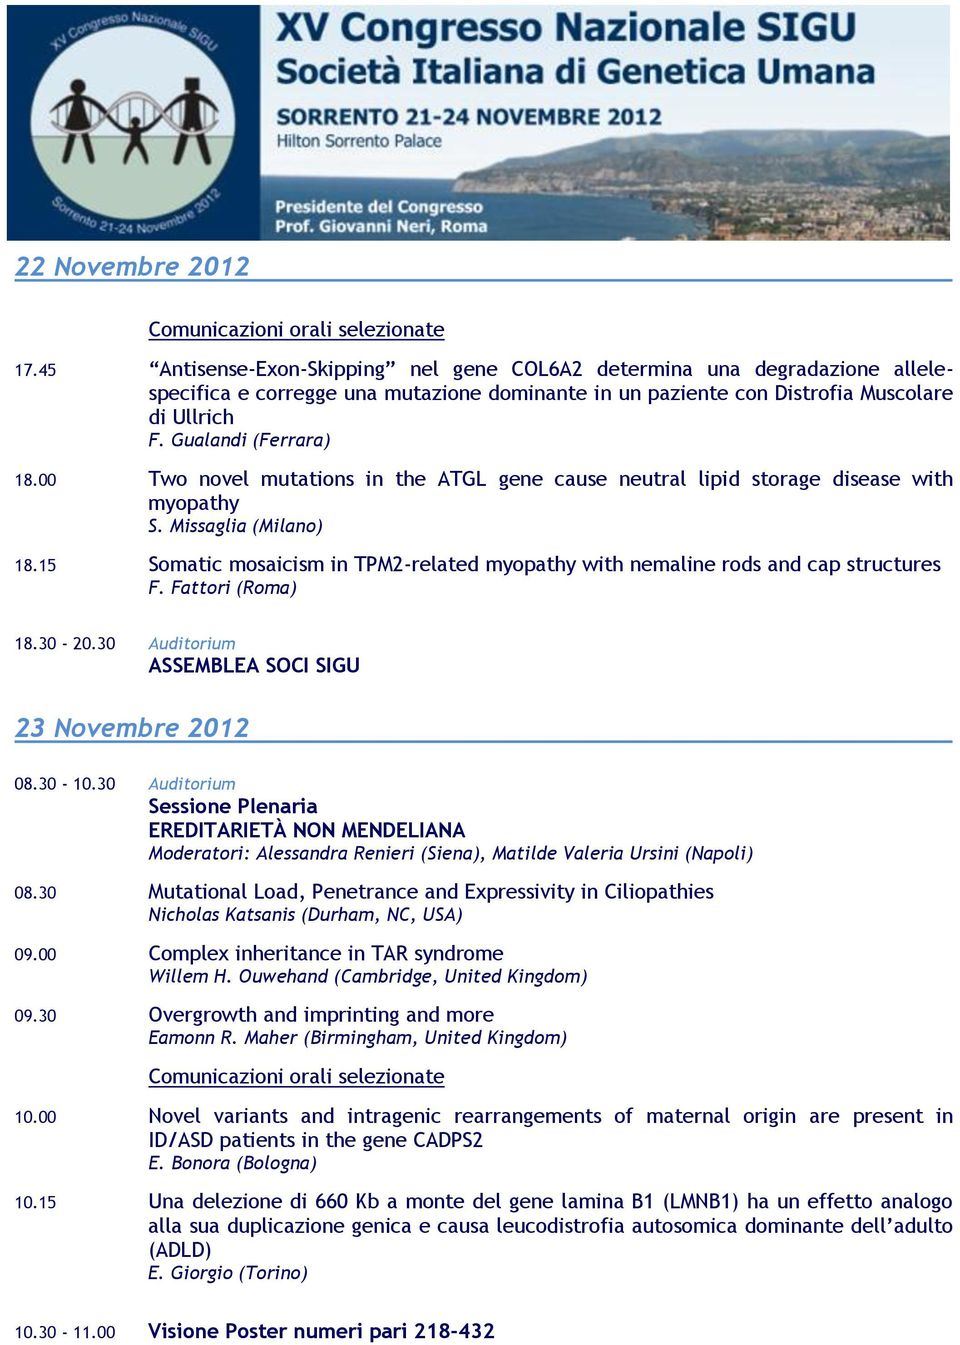 15 Somatic mosaicism in TPM2-related myopathy with nemaline rods and cap structures F. Fattori (Roma) 18.30-20.30 Auditorium ASSEMBLEA SOCI SIGU 23 Novembre 2012 08.30-10.